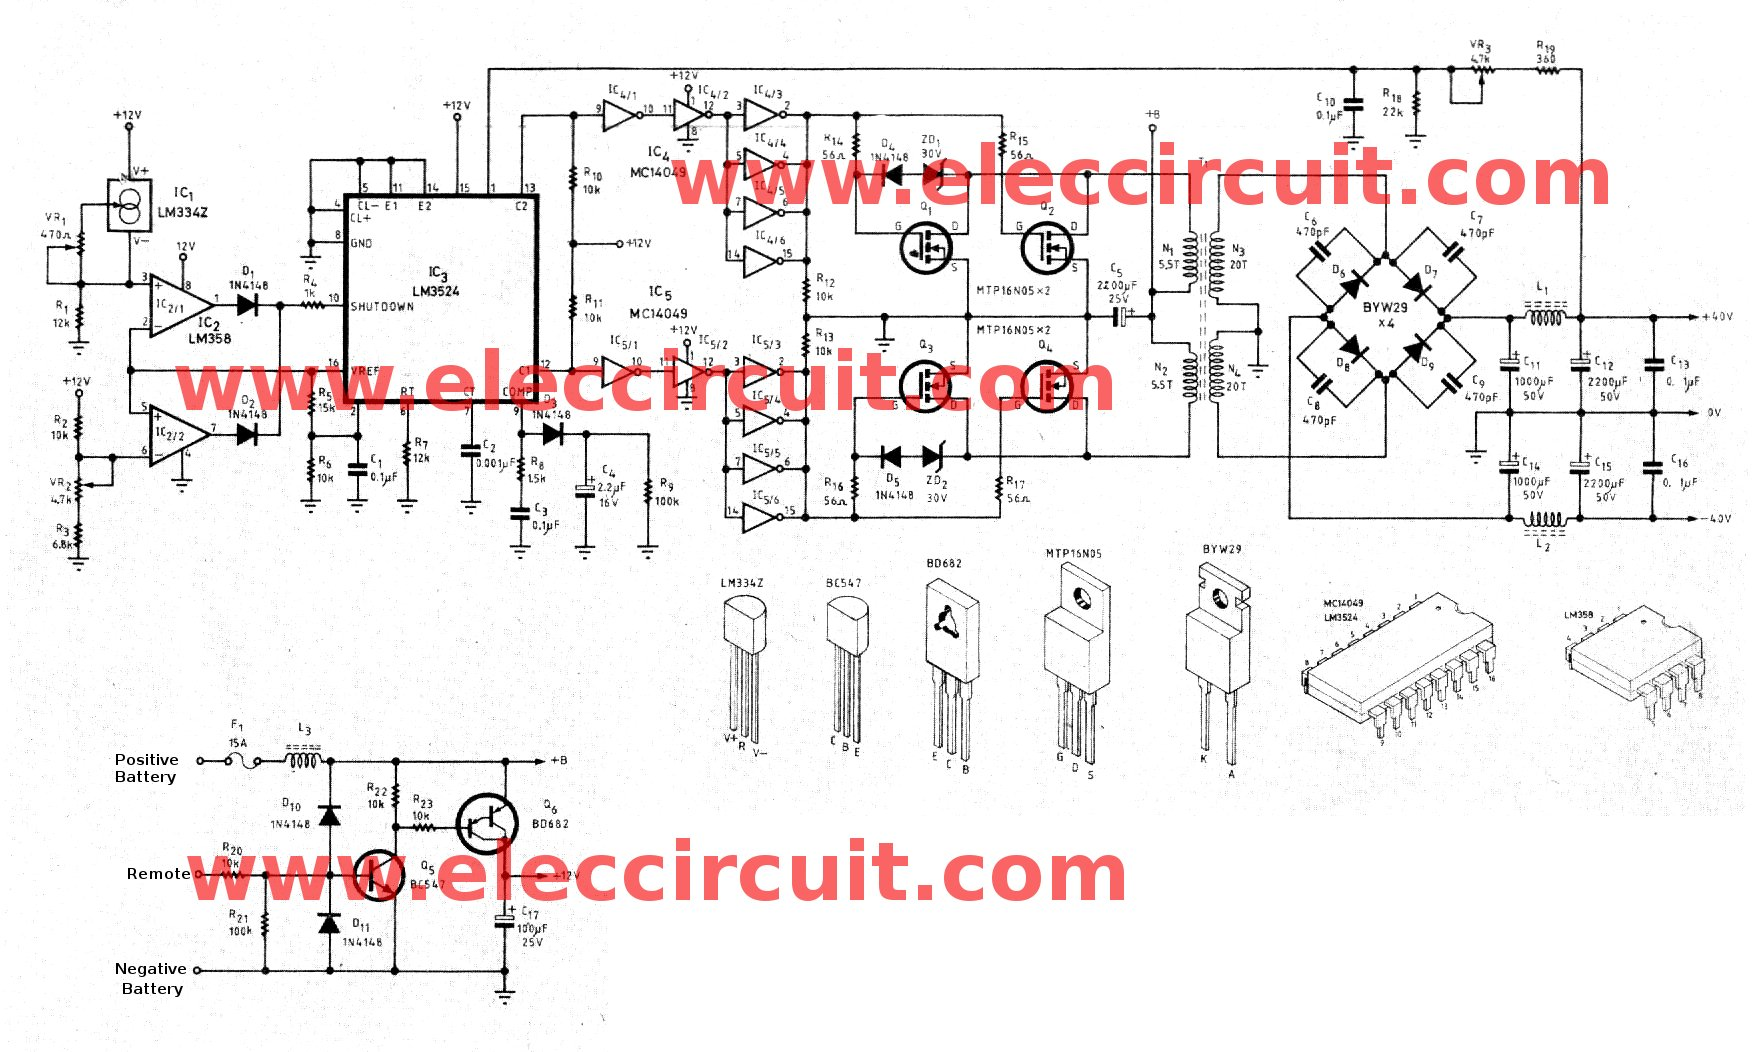 dc wiring diagram 24 car dc to dc converter circuit output v to v car dc to dc converter circuit output v to v circuit of dc to dc converter